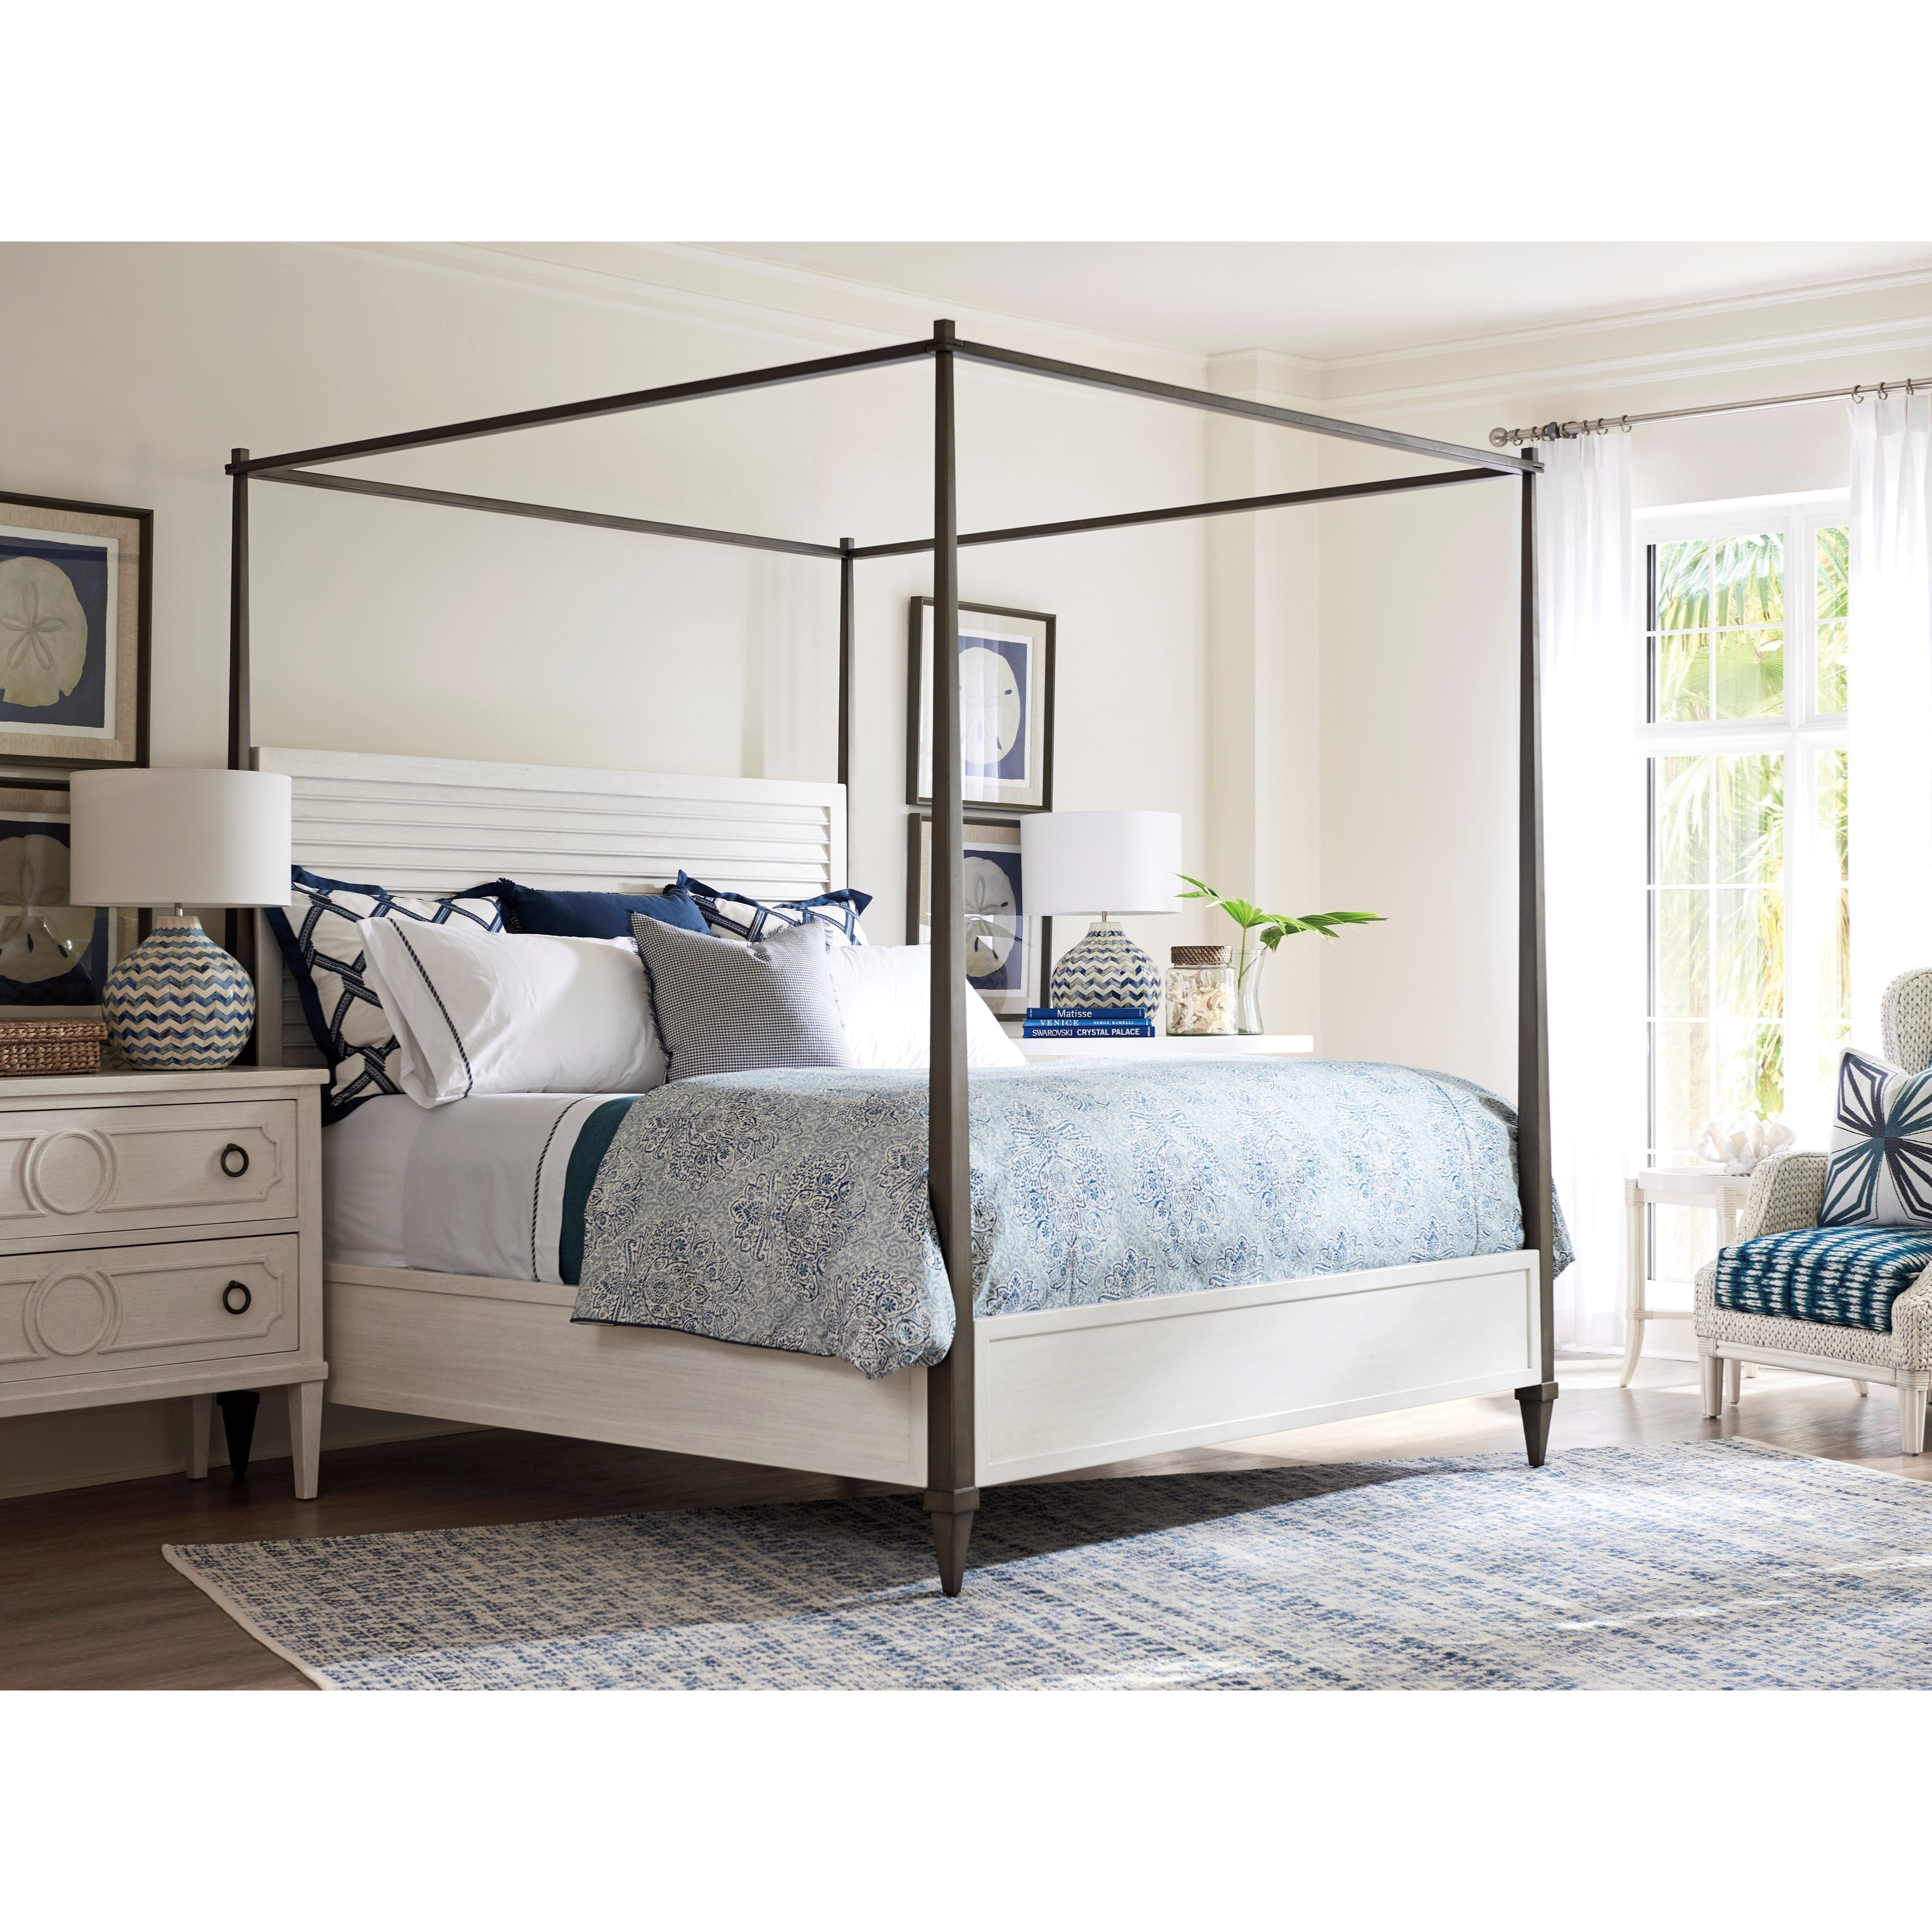 Ocean Breeze King Bedroom Group by Tommy Bahama Home at Baer's Furniture